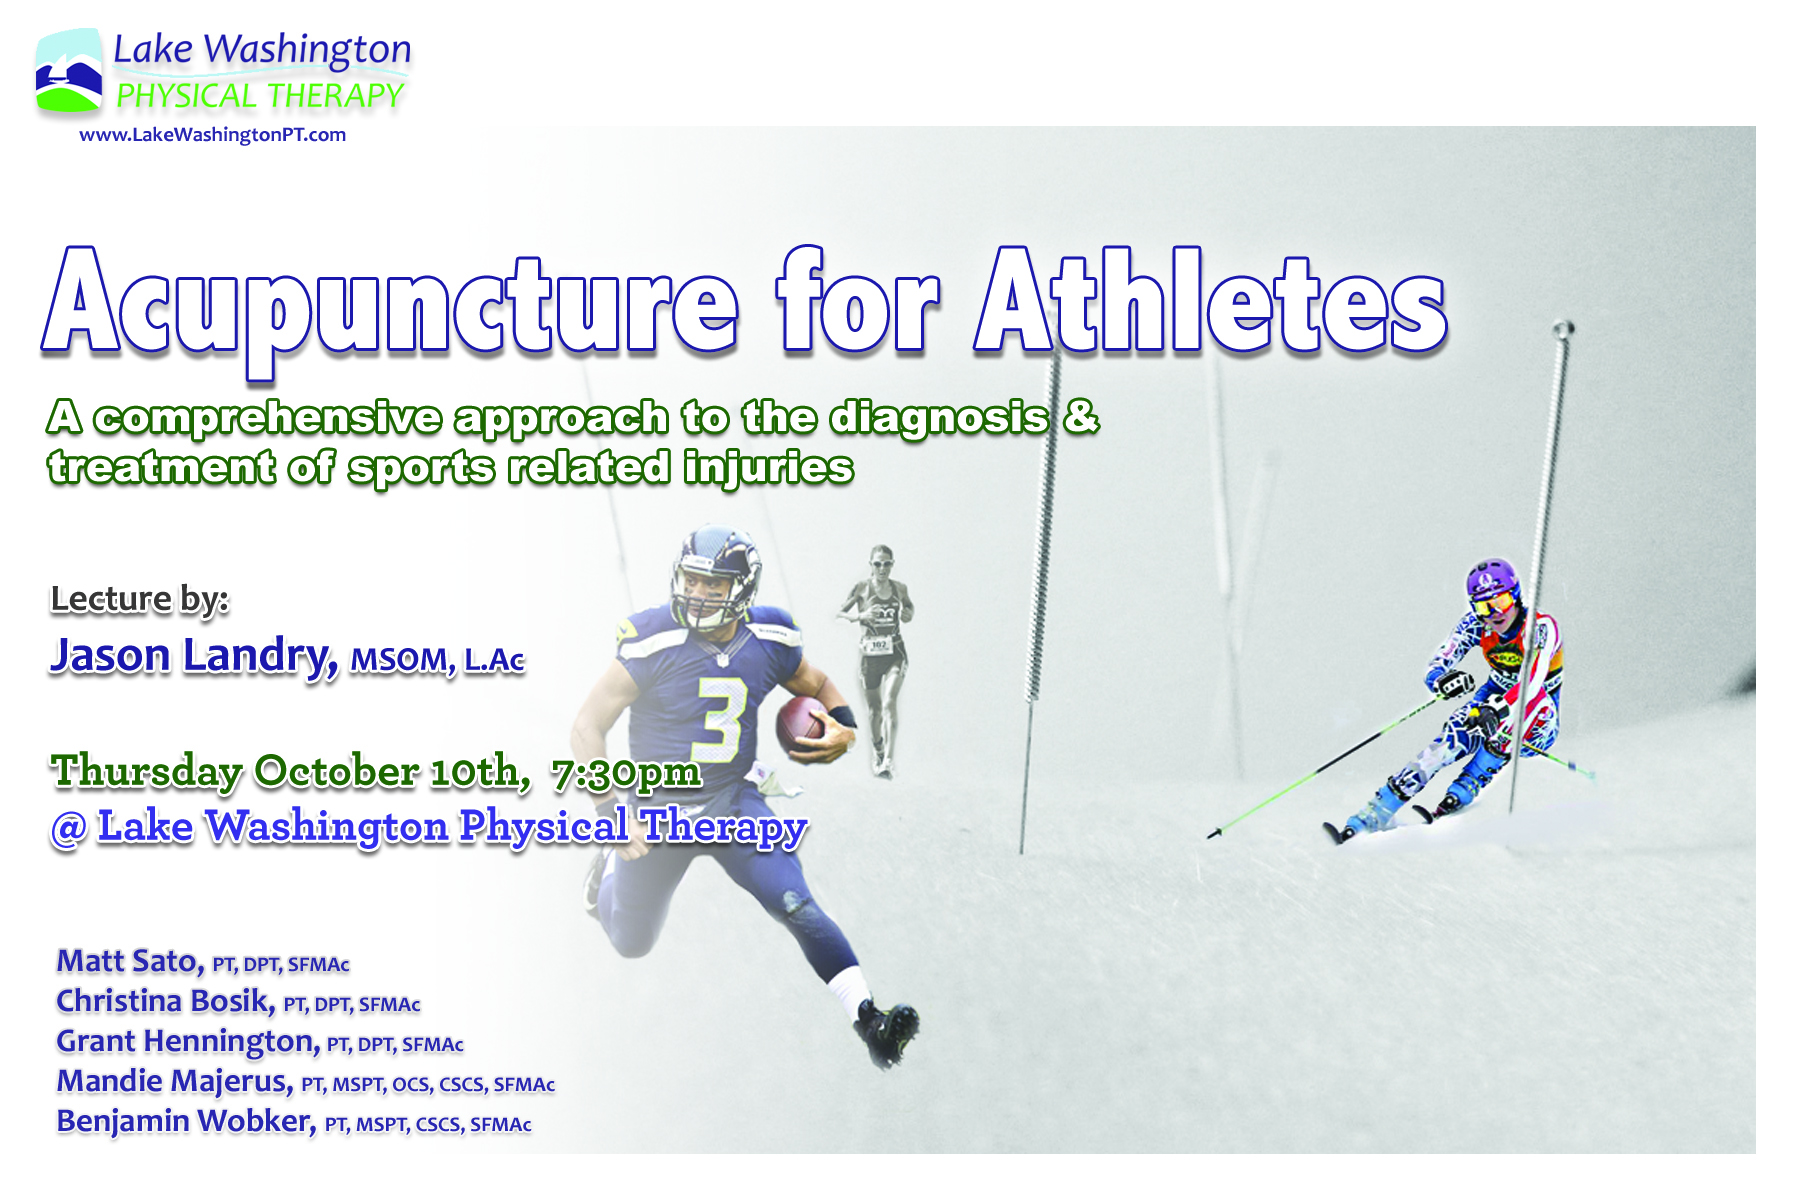 Dr. Jason Landry, LAcAcupuncture for Athletes - Dr. Landry lectured on the team approach and the most effective way to integrate acupuncture into the clinical team. For more on Dr. Landry (click here)